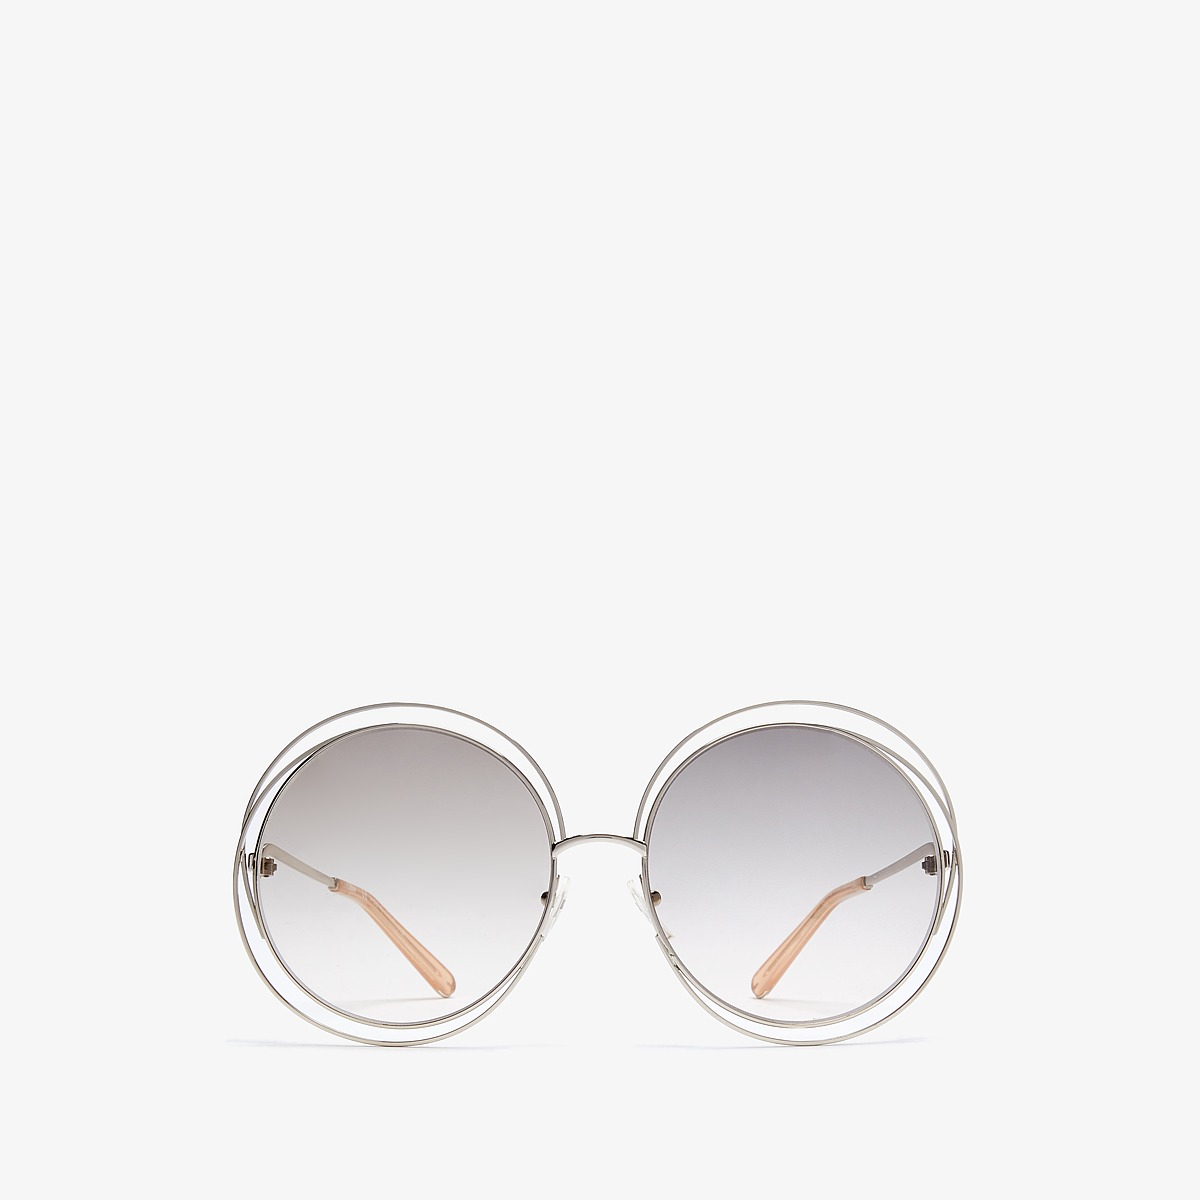 Chloe Carlina Round Gold/Transparent Peach Fashion Sunglasses